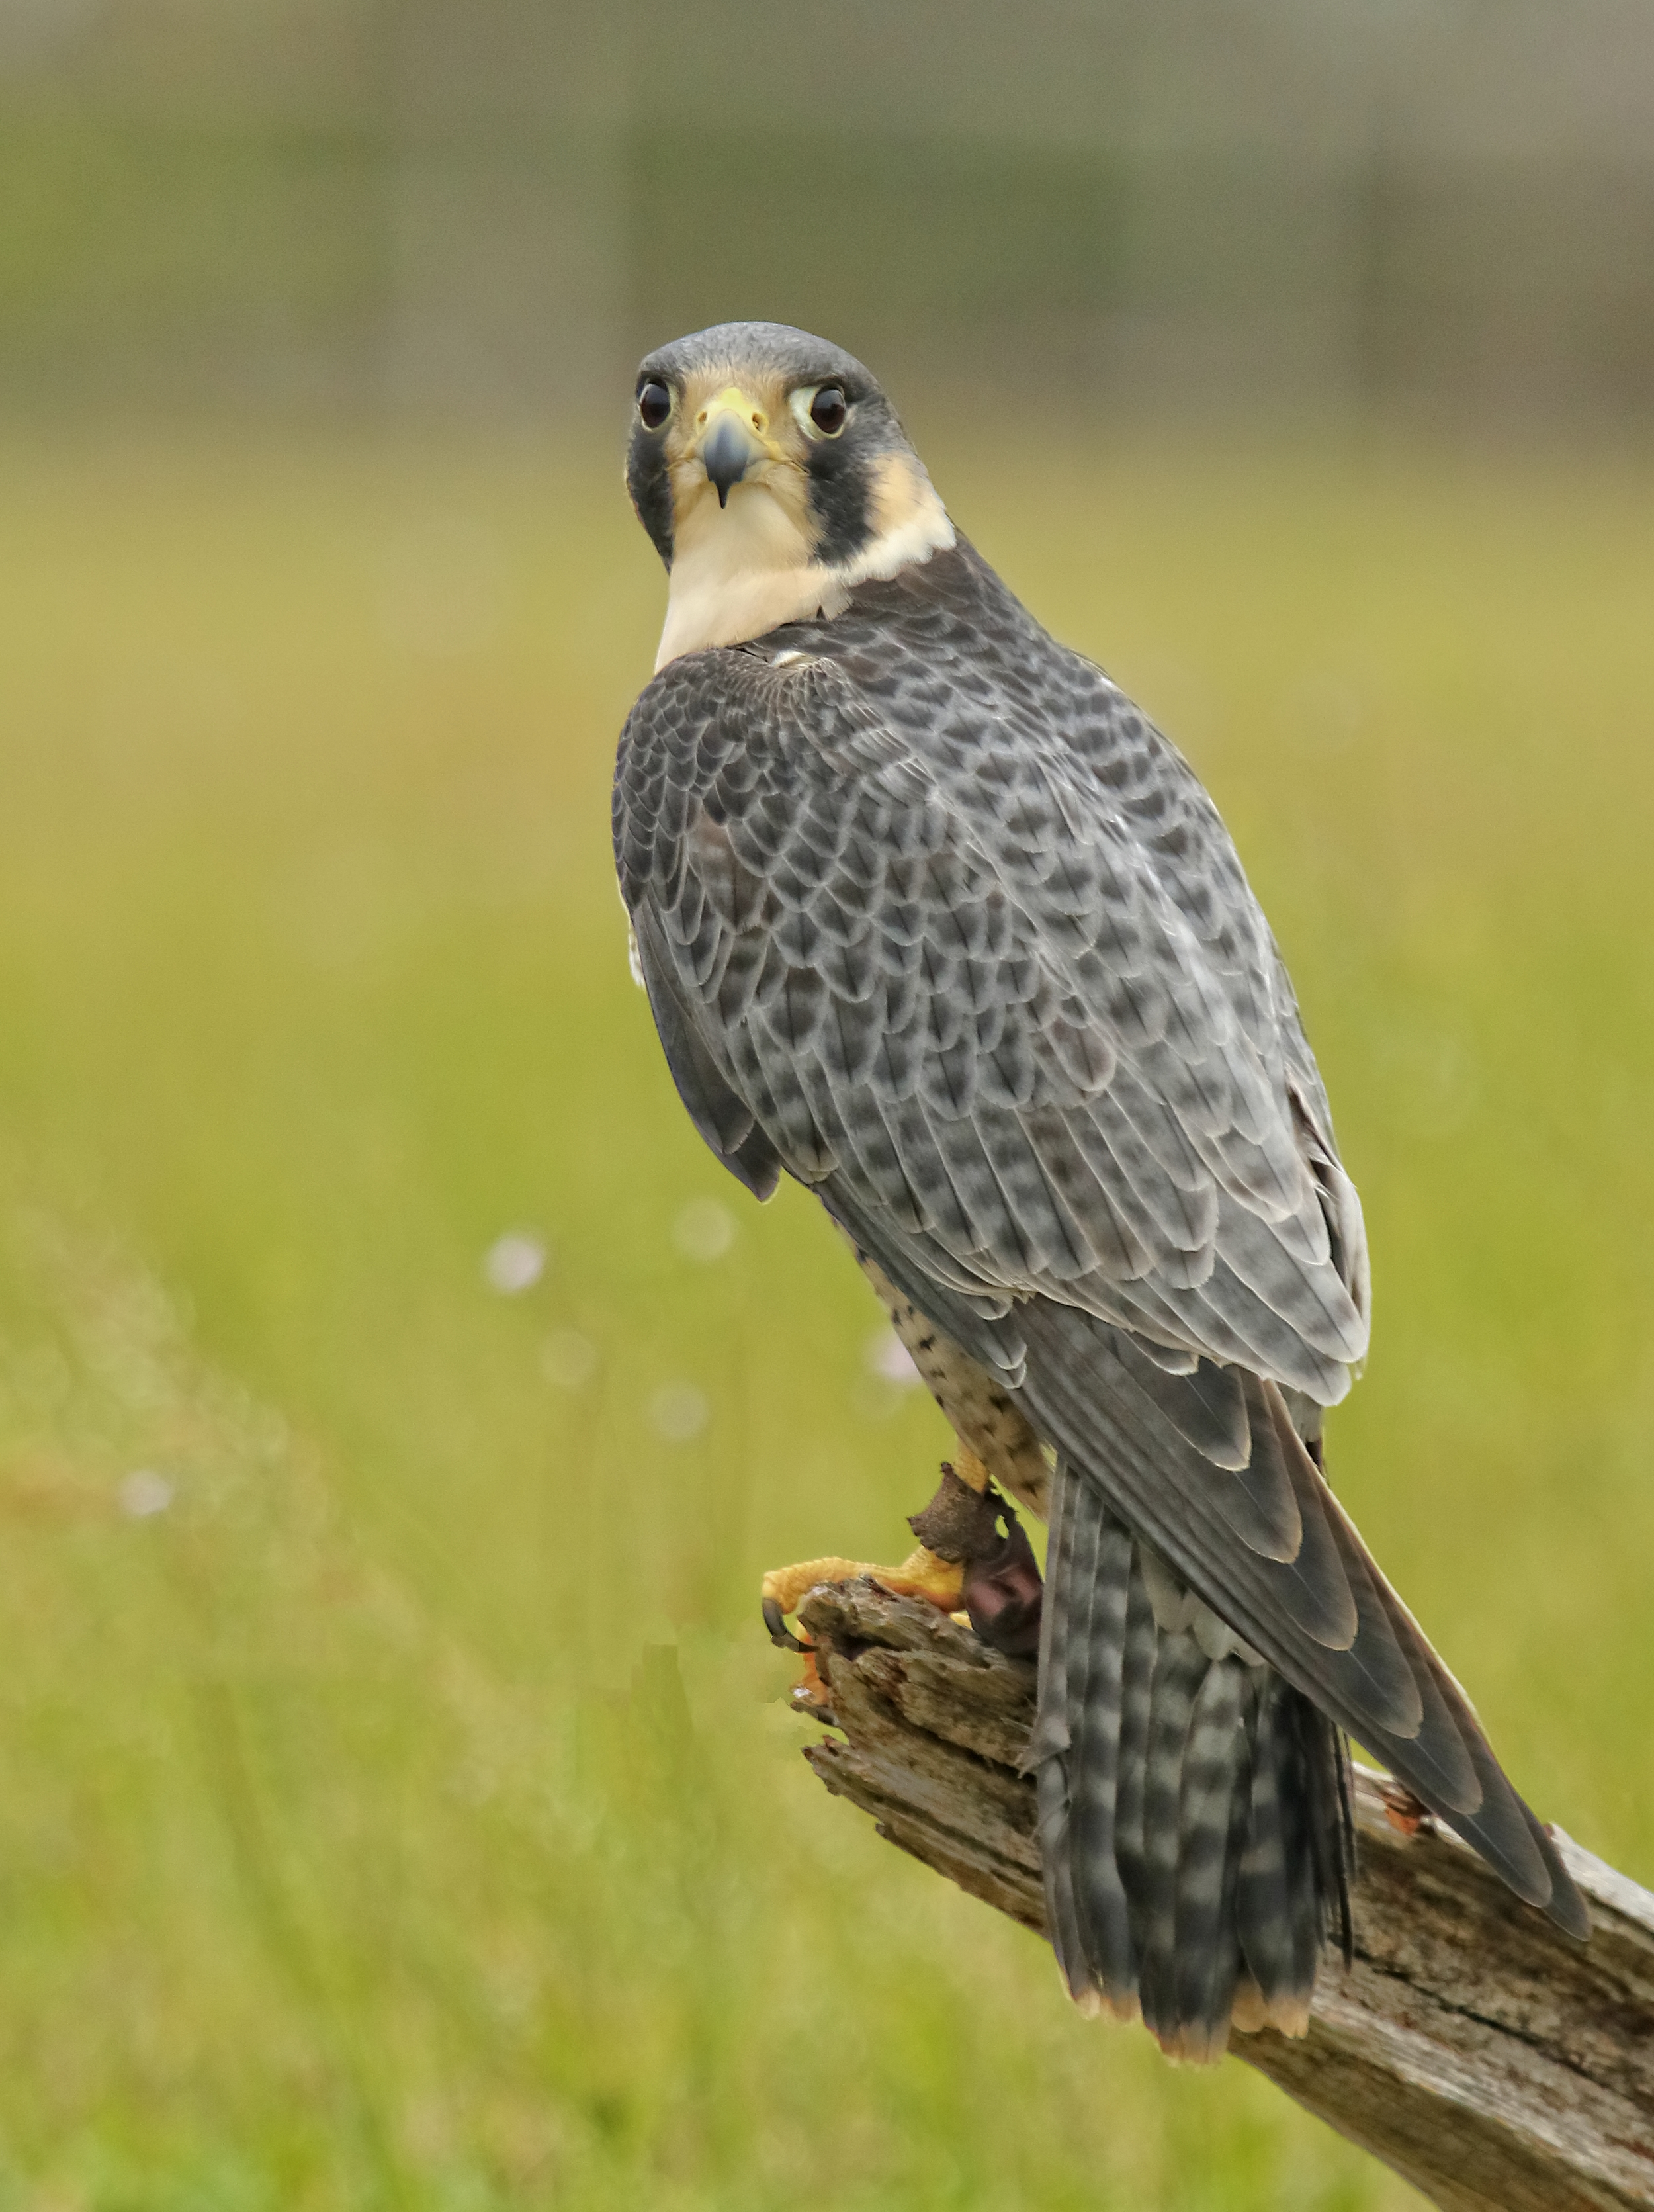 Sparky, the male Peregrine Falcon suffered a wing injury in migration.